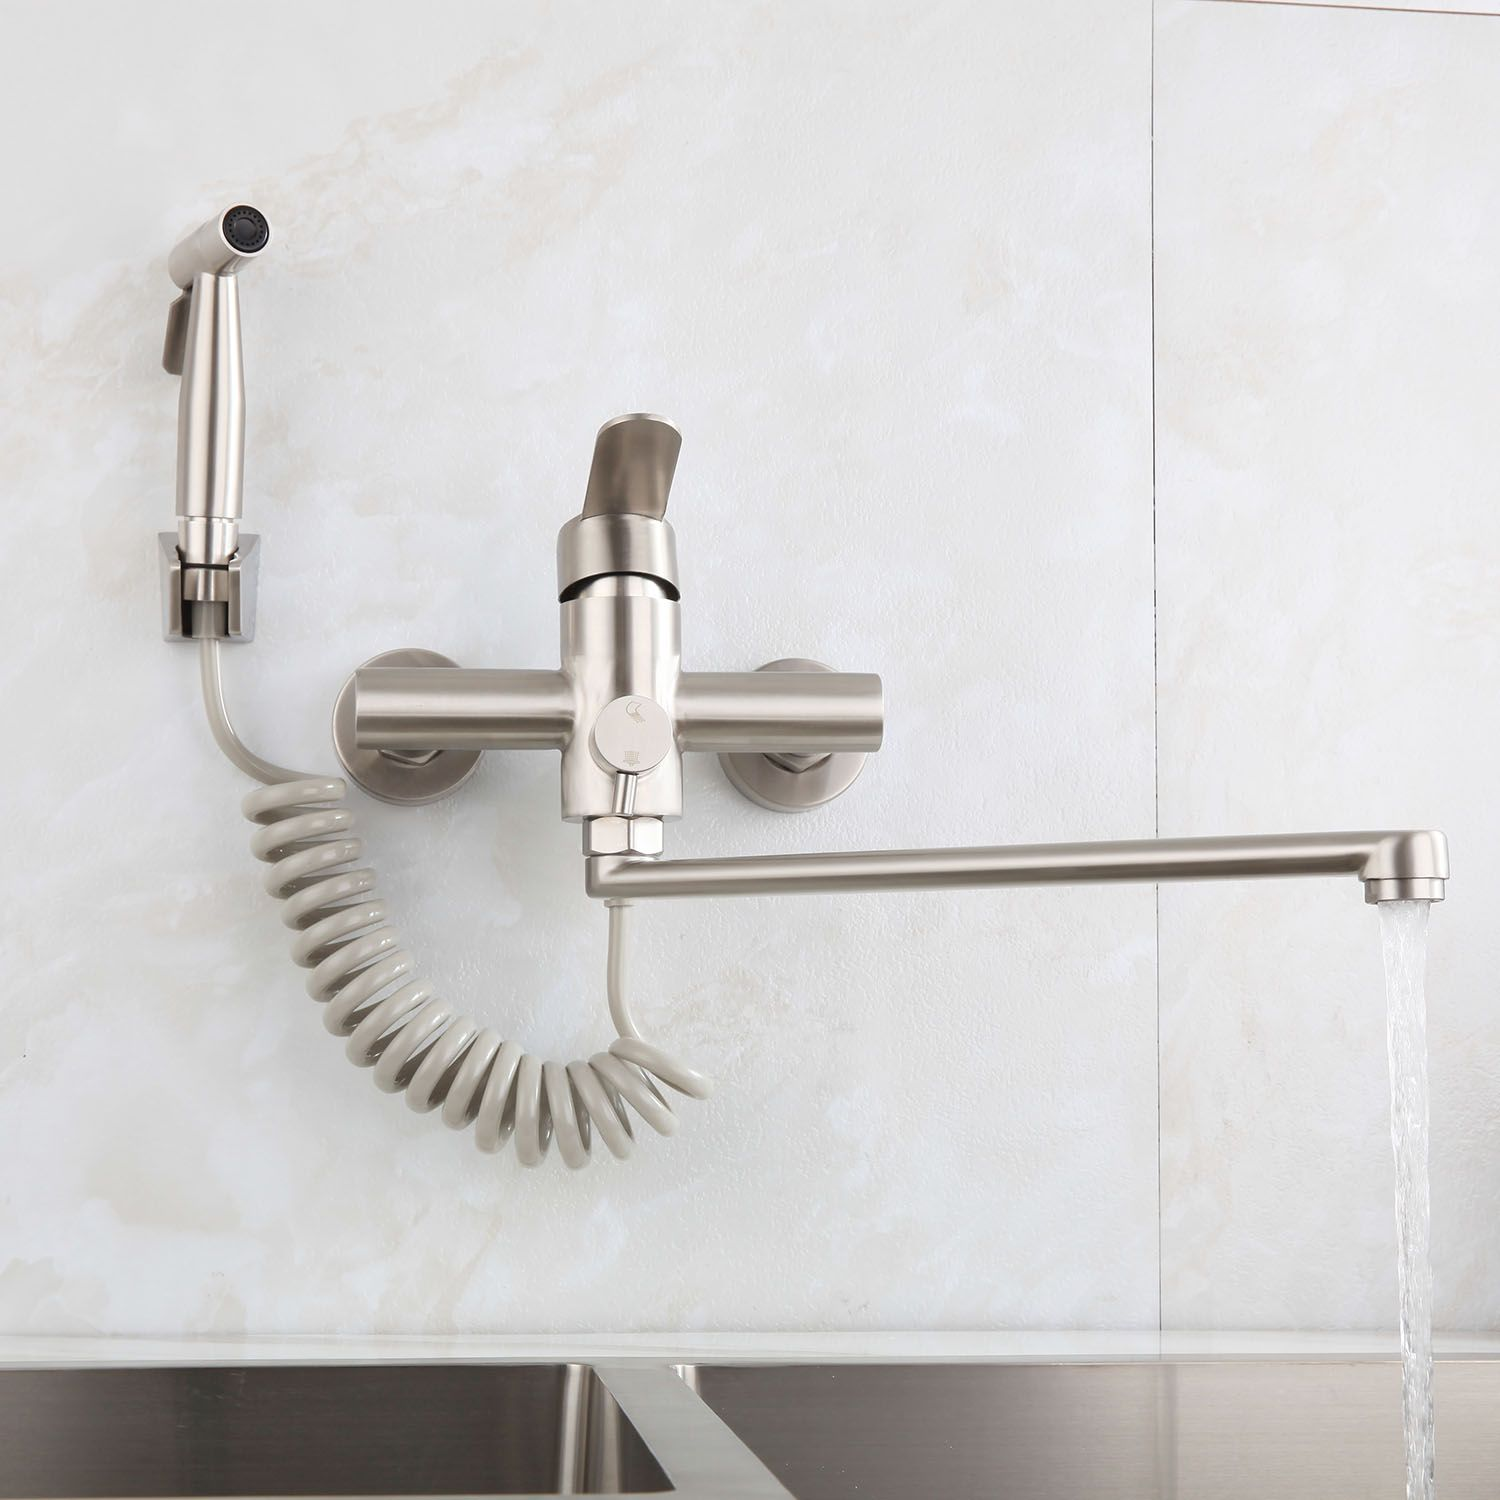 Stainless Steel Brushed Kitchen Faucet Rotatable Wall Mounted Tap With Bidet Spray Shower Head In 2020 Kitchen Faucet Wall Mounted Taps Faucet